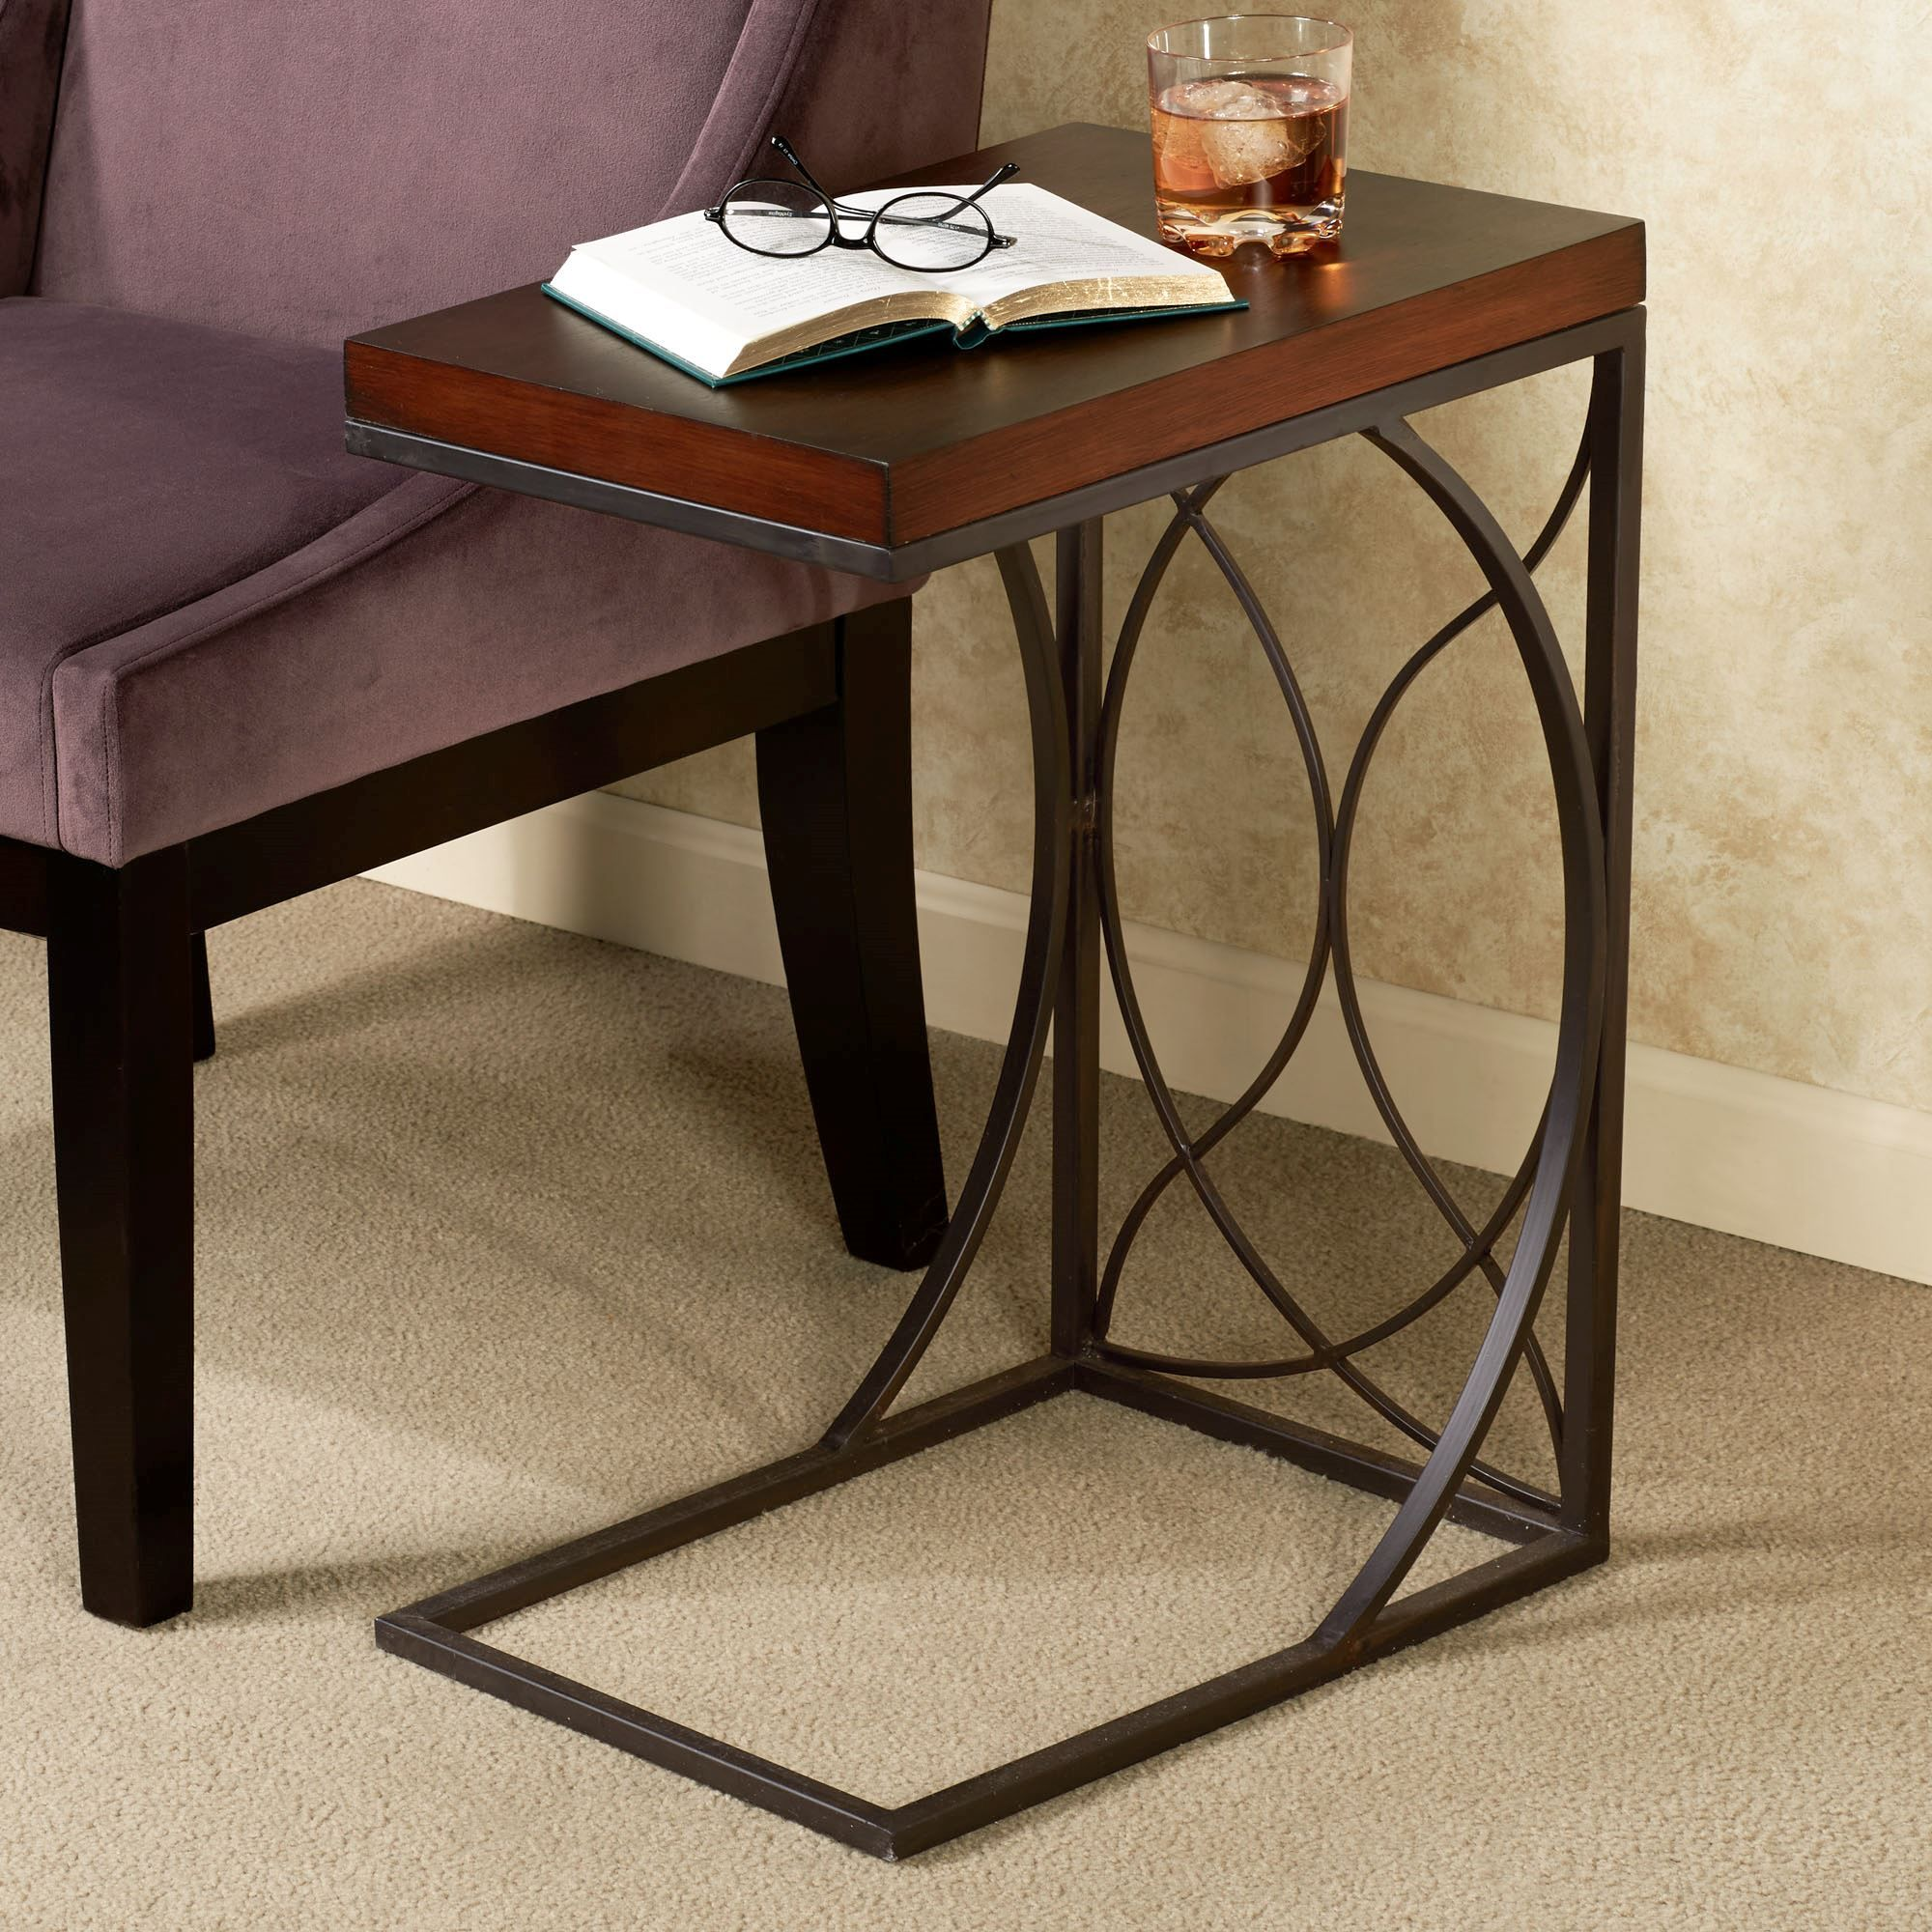 Rustic Bronze Polished Iron C Shape Based Sofa Side Table With